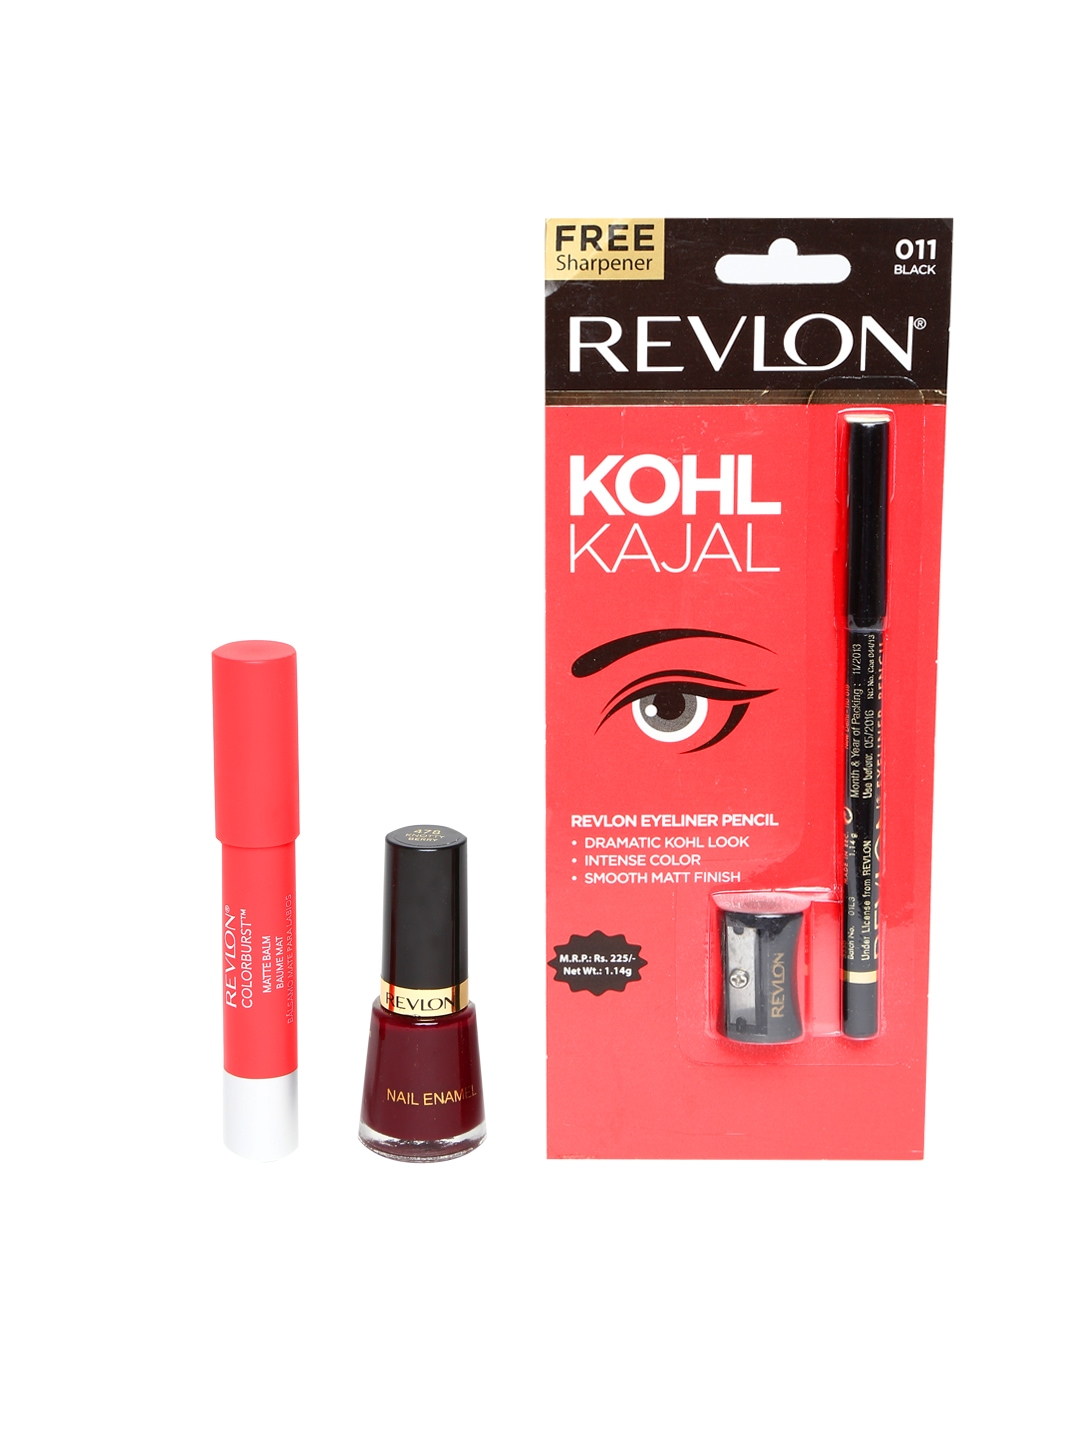 Myntra Revlon Beauty Product Set with Free Kohl Kajal ...